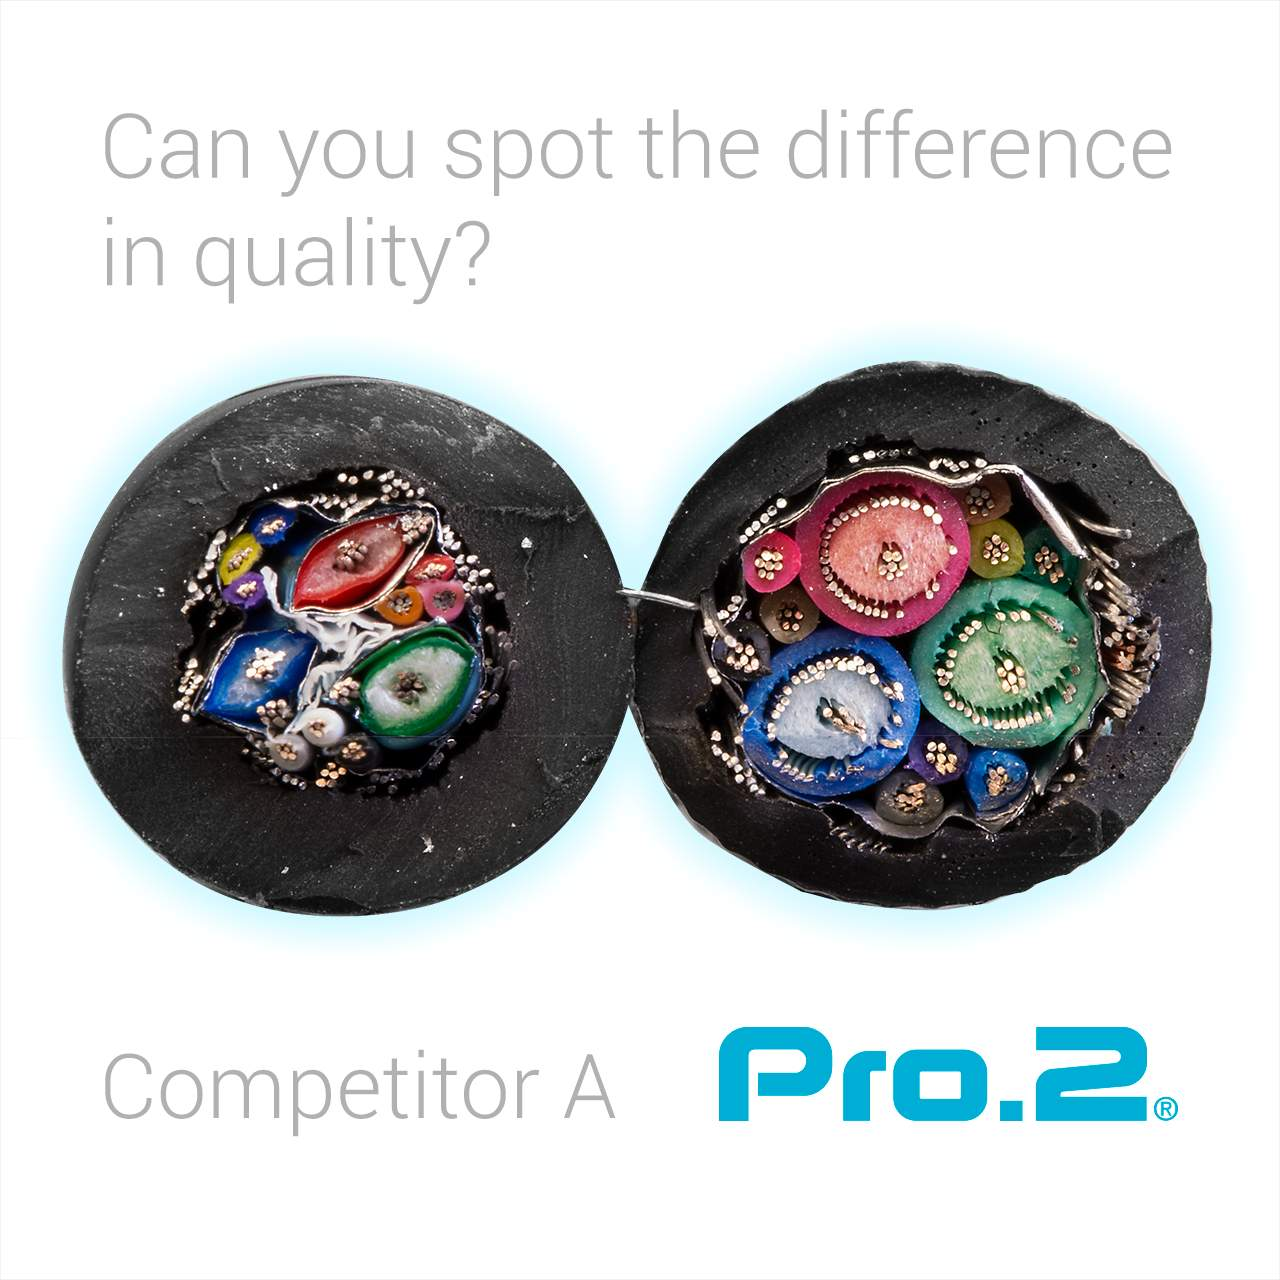 Comparison with a leading competitor's VGA lead